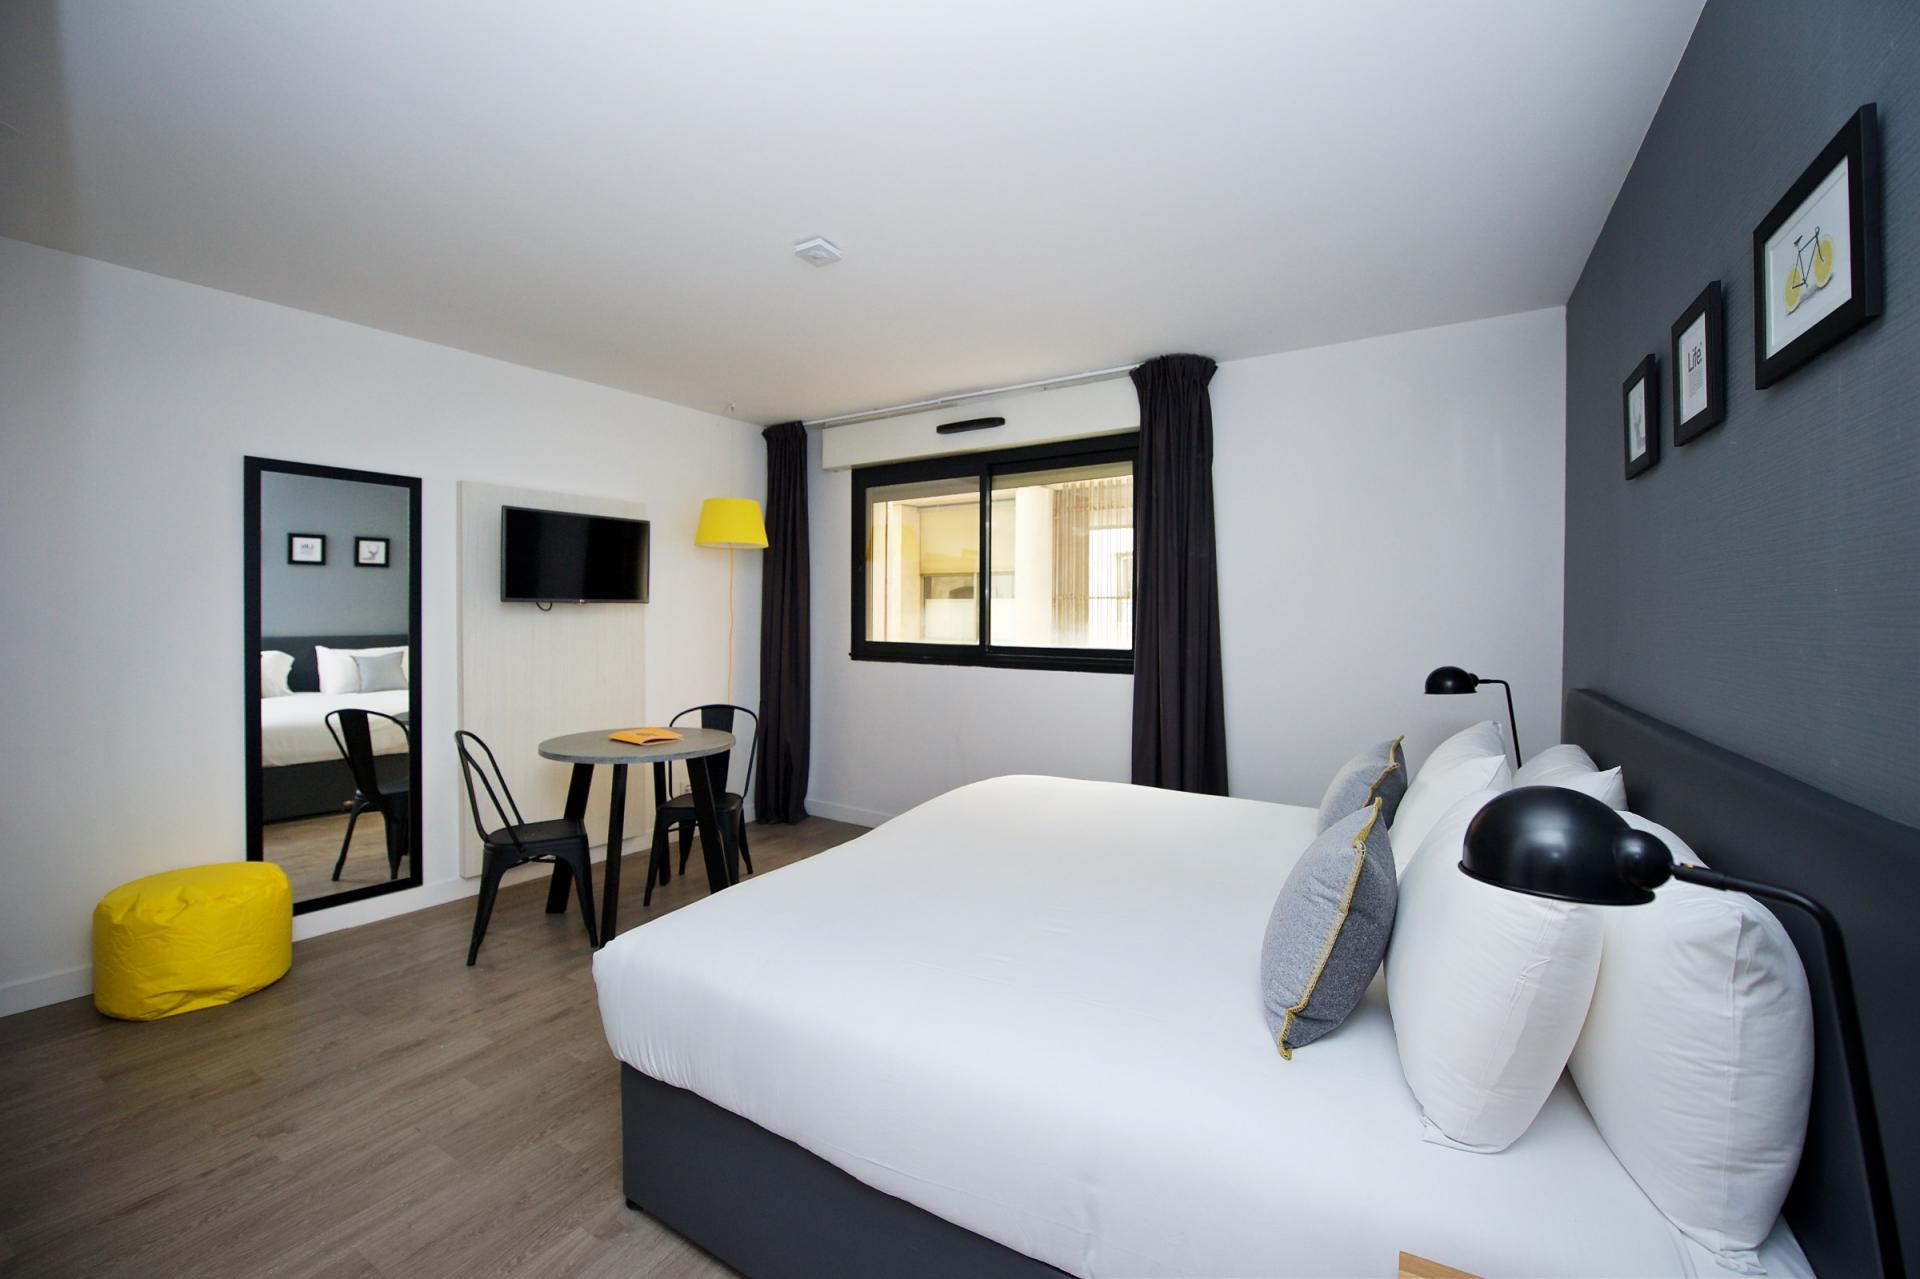 Studio space at Staycity Centre Vieux Port - Citybase Apartments